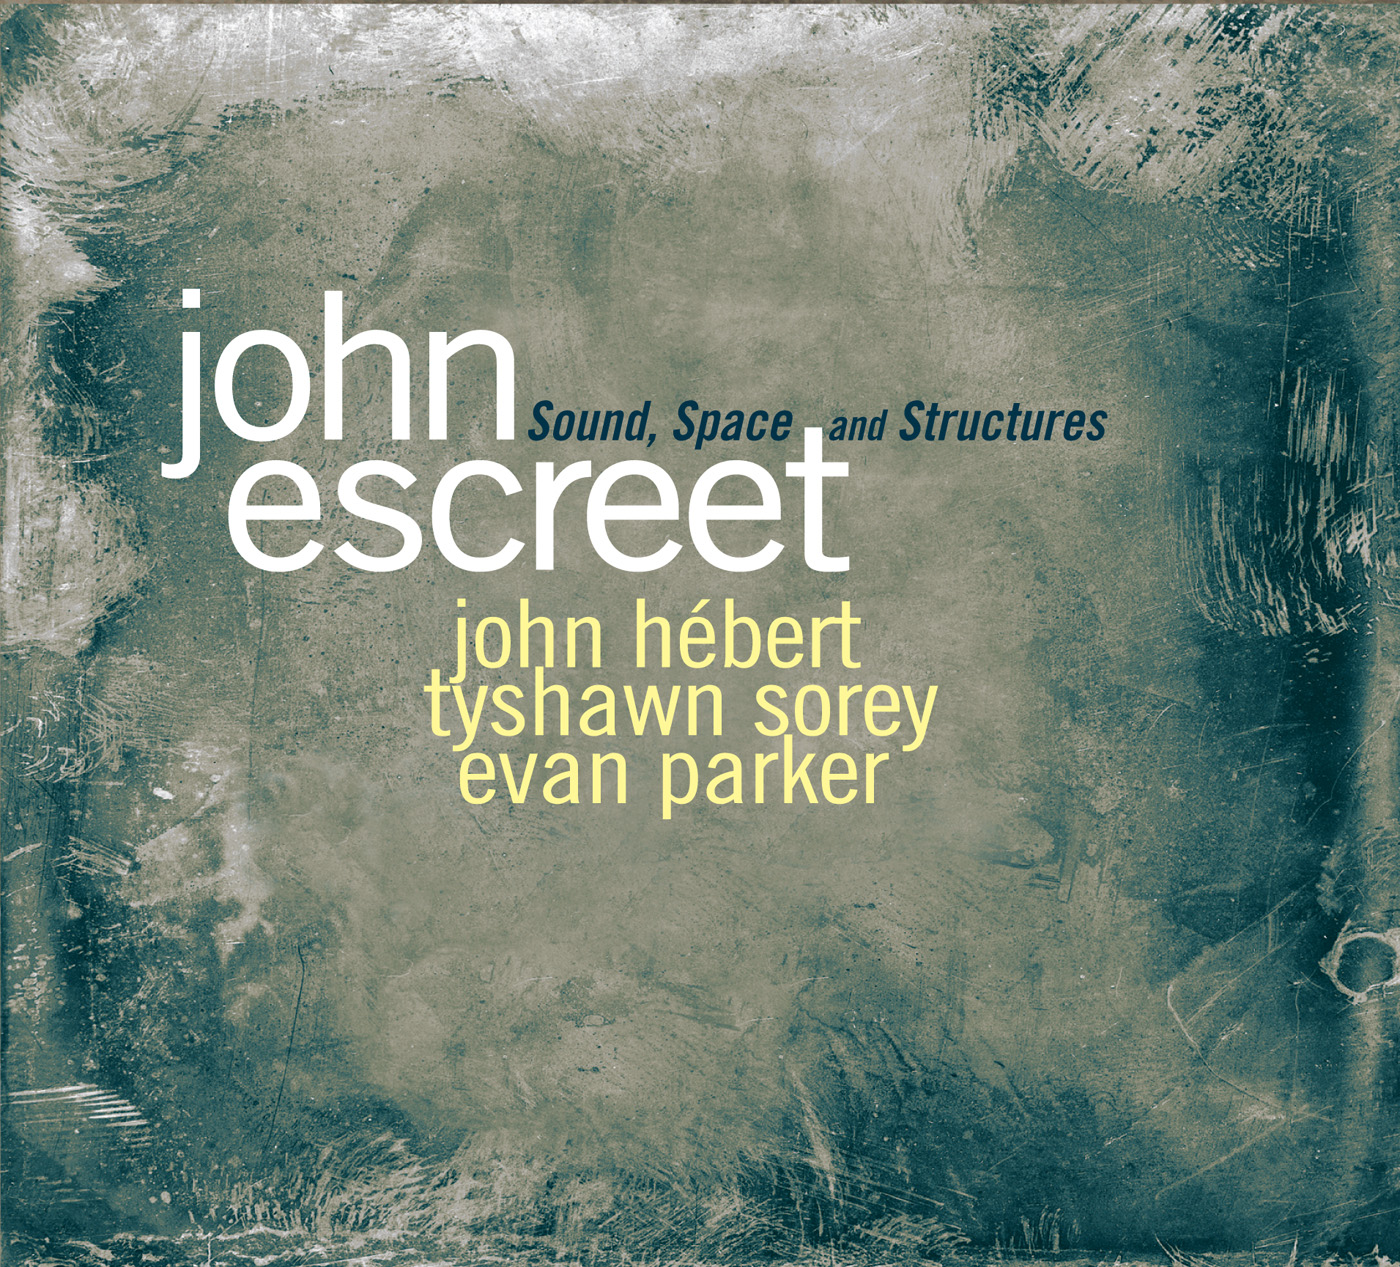 Sound, Space and Structures  by John  Escreet cover